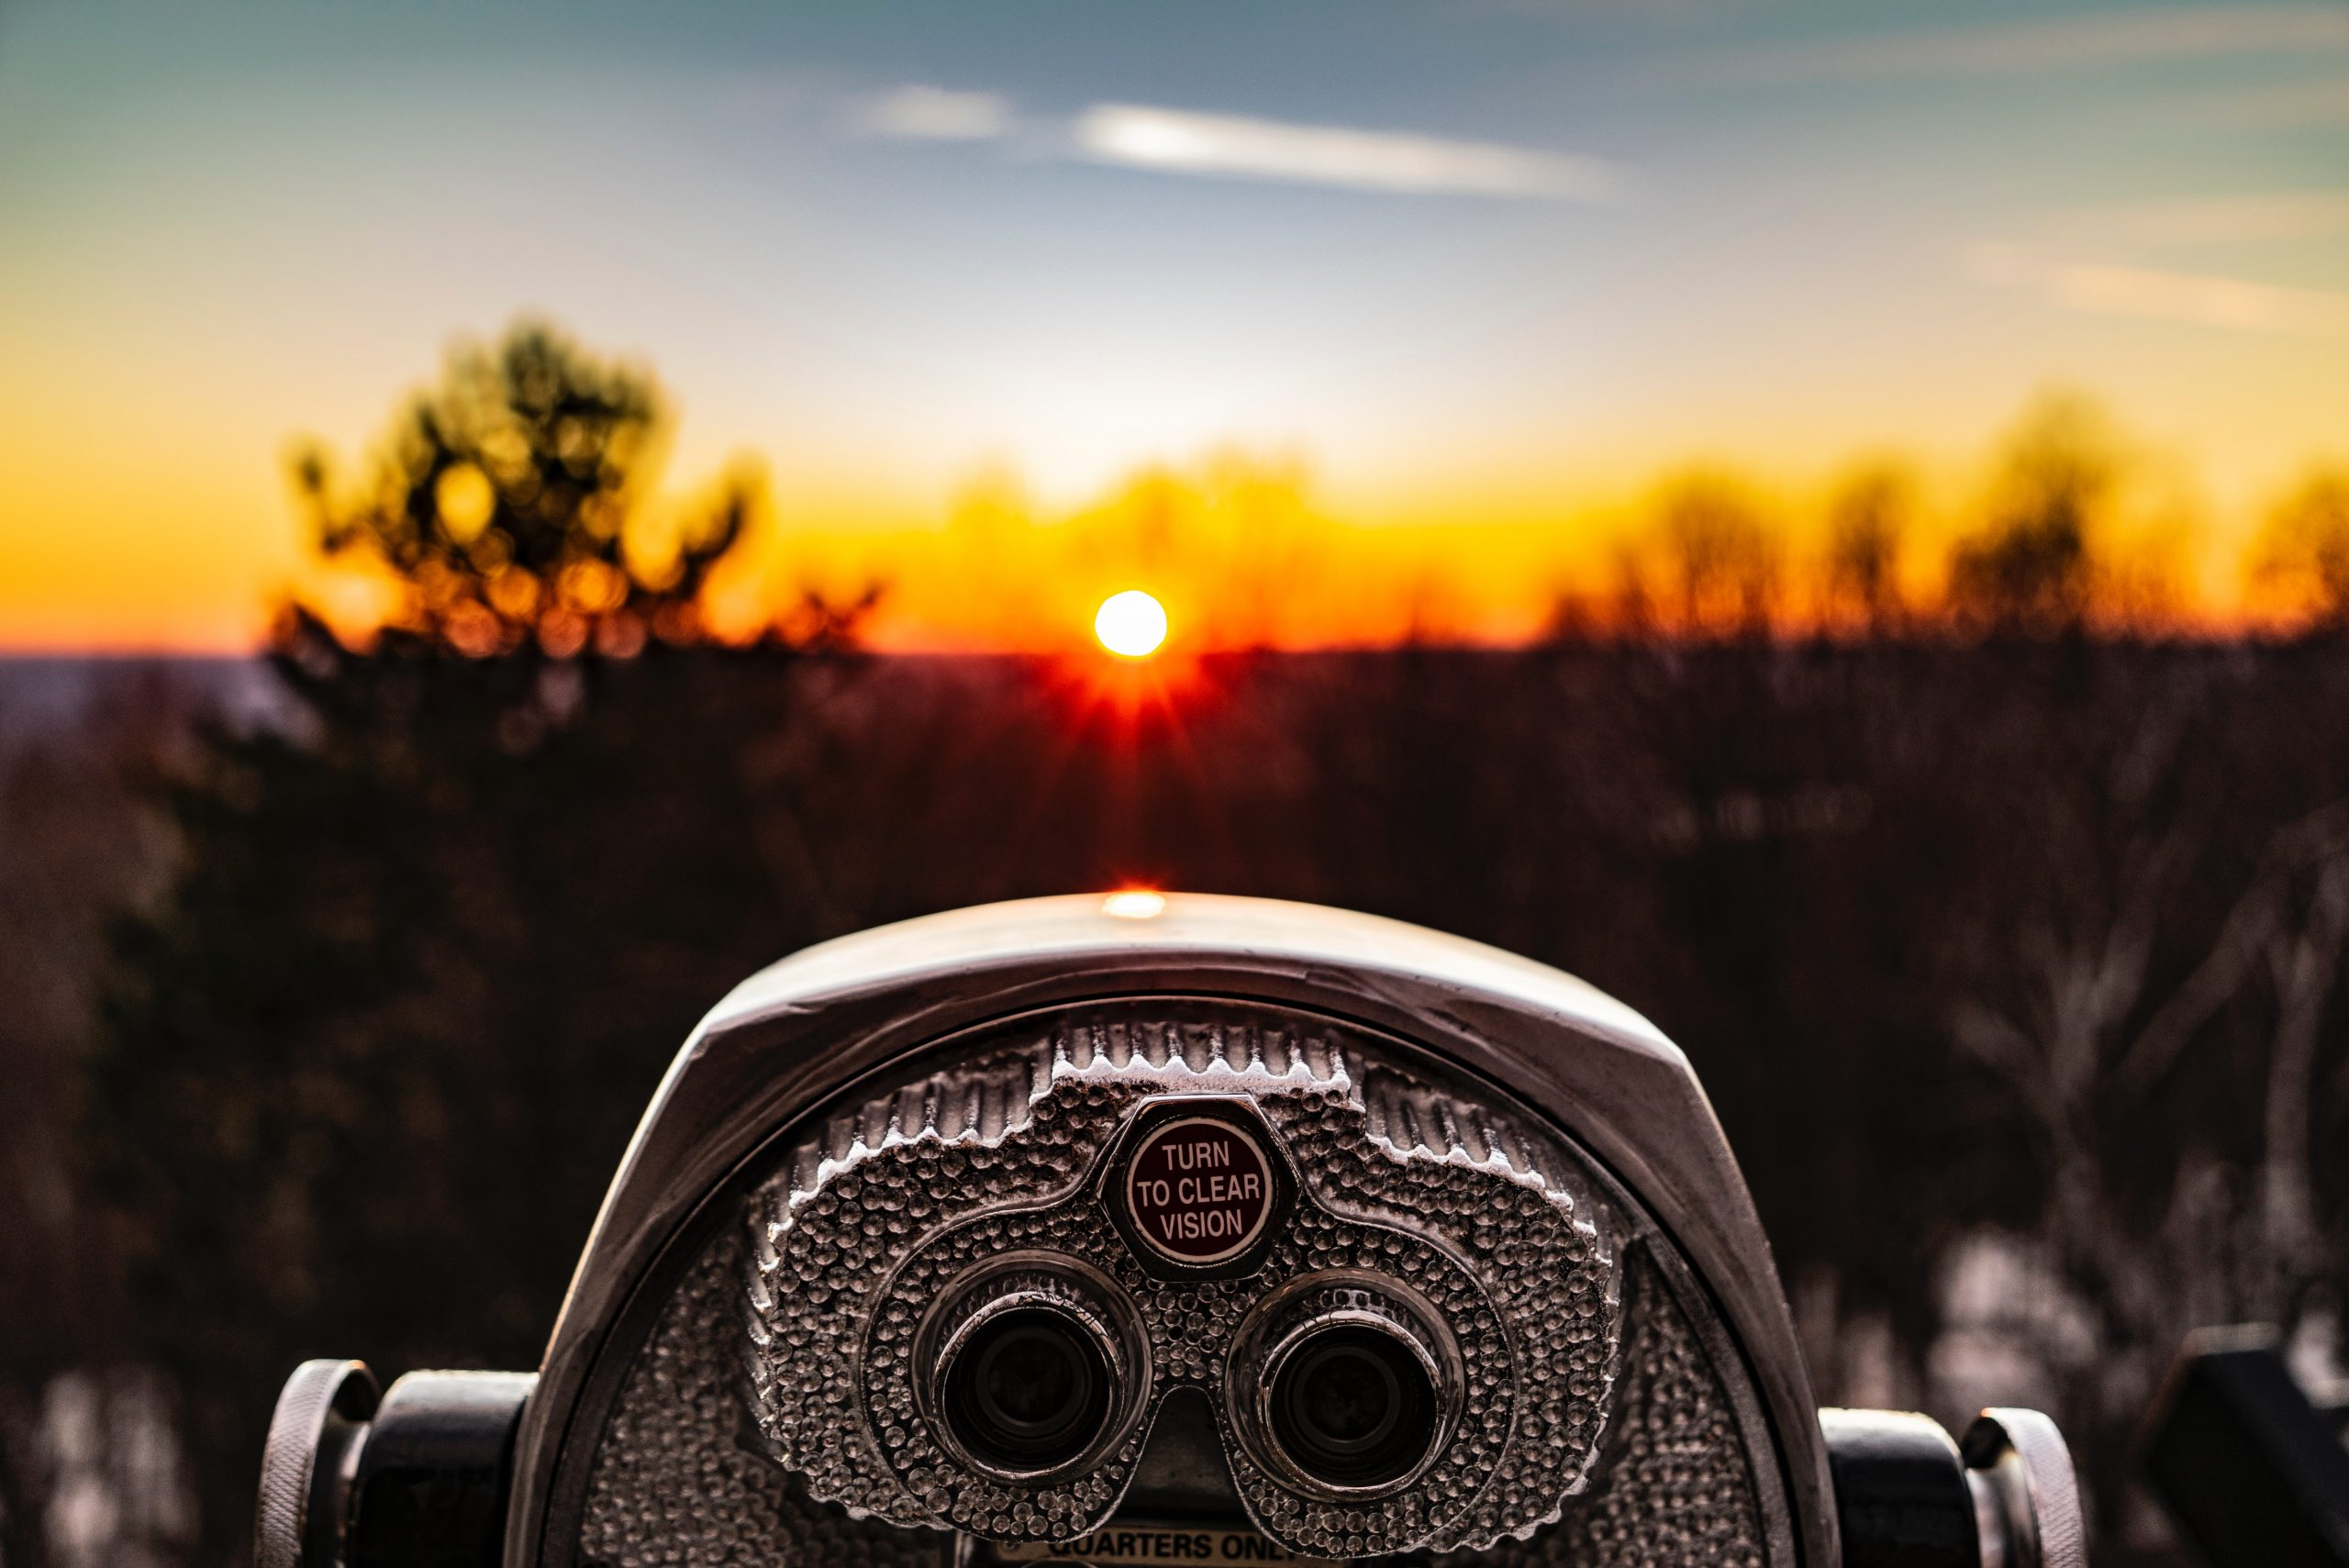 view finder looking at sunset